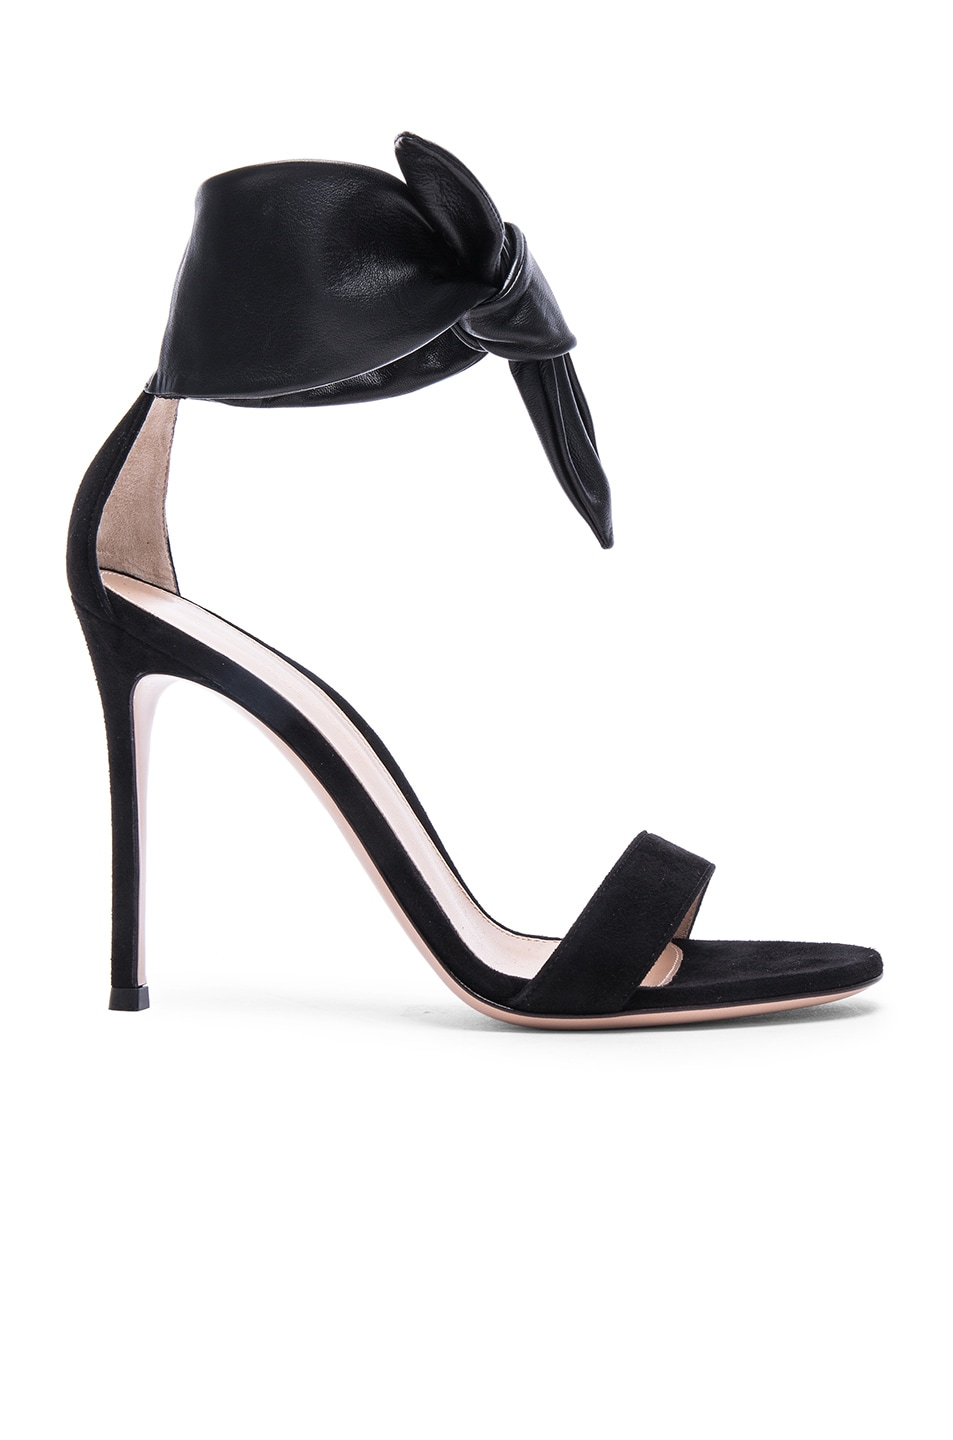 Image 1 of Gianvito Rossi Suede & Leather Bandana Heels in Black